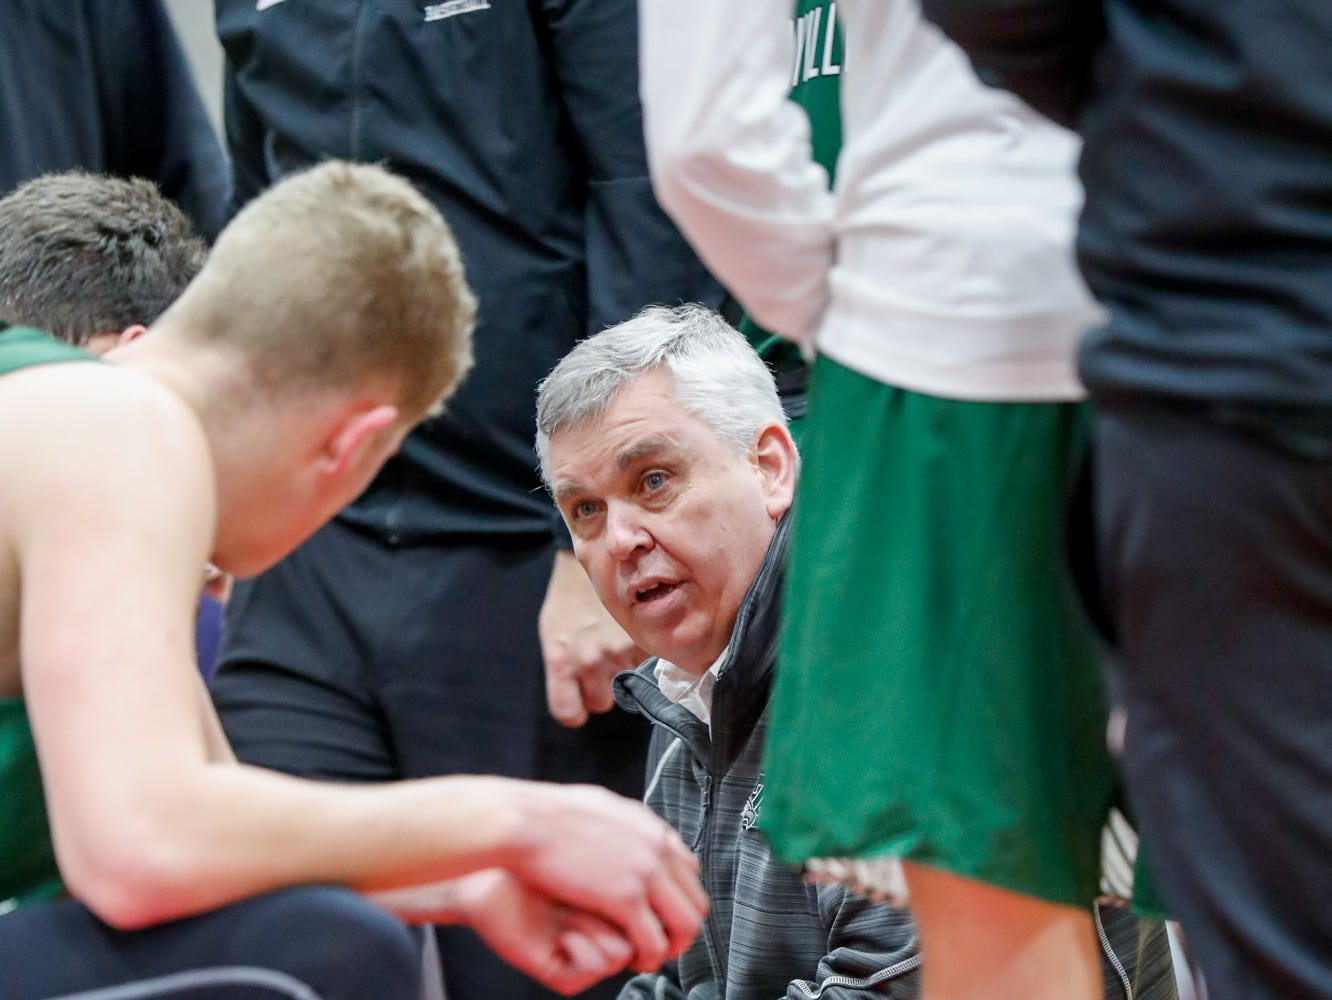 Zionsville Community High School's Head Coach Shaun Busick huddles with players during a time out at the Tip Off Classic game between Cathedral High School and Zionsville Community High School, held at the Southport Fieldhouse, on Saturday, Dec. 8, 2018.